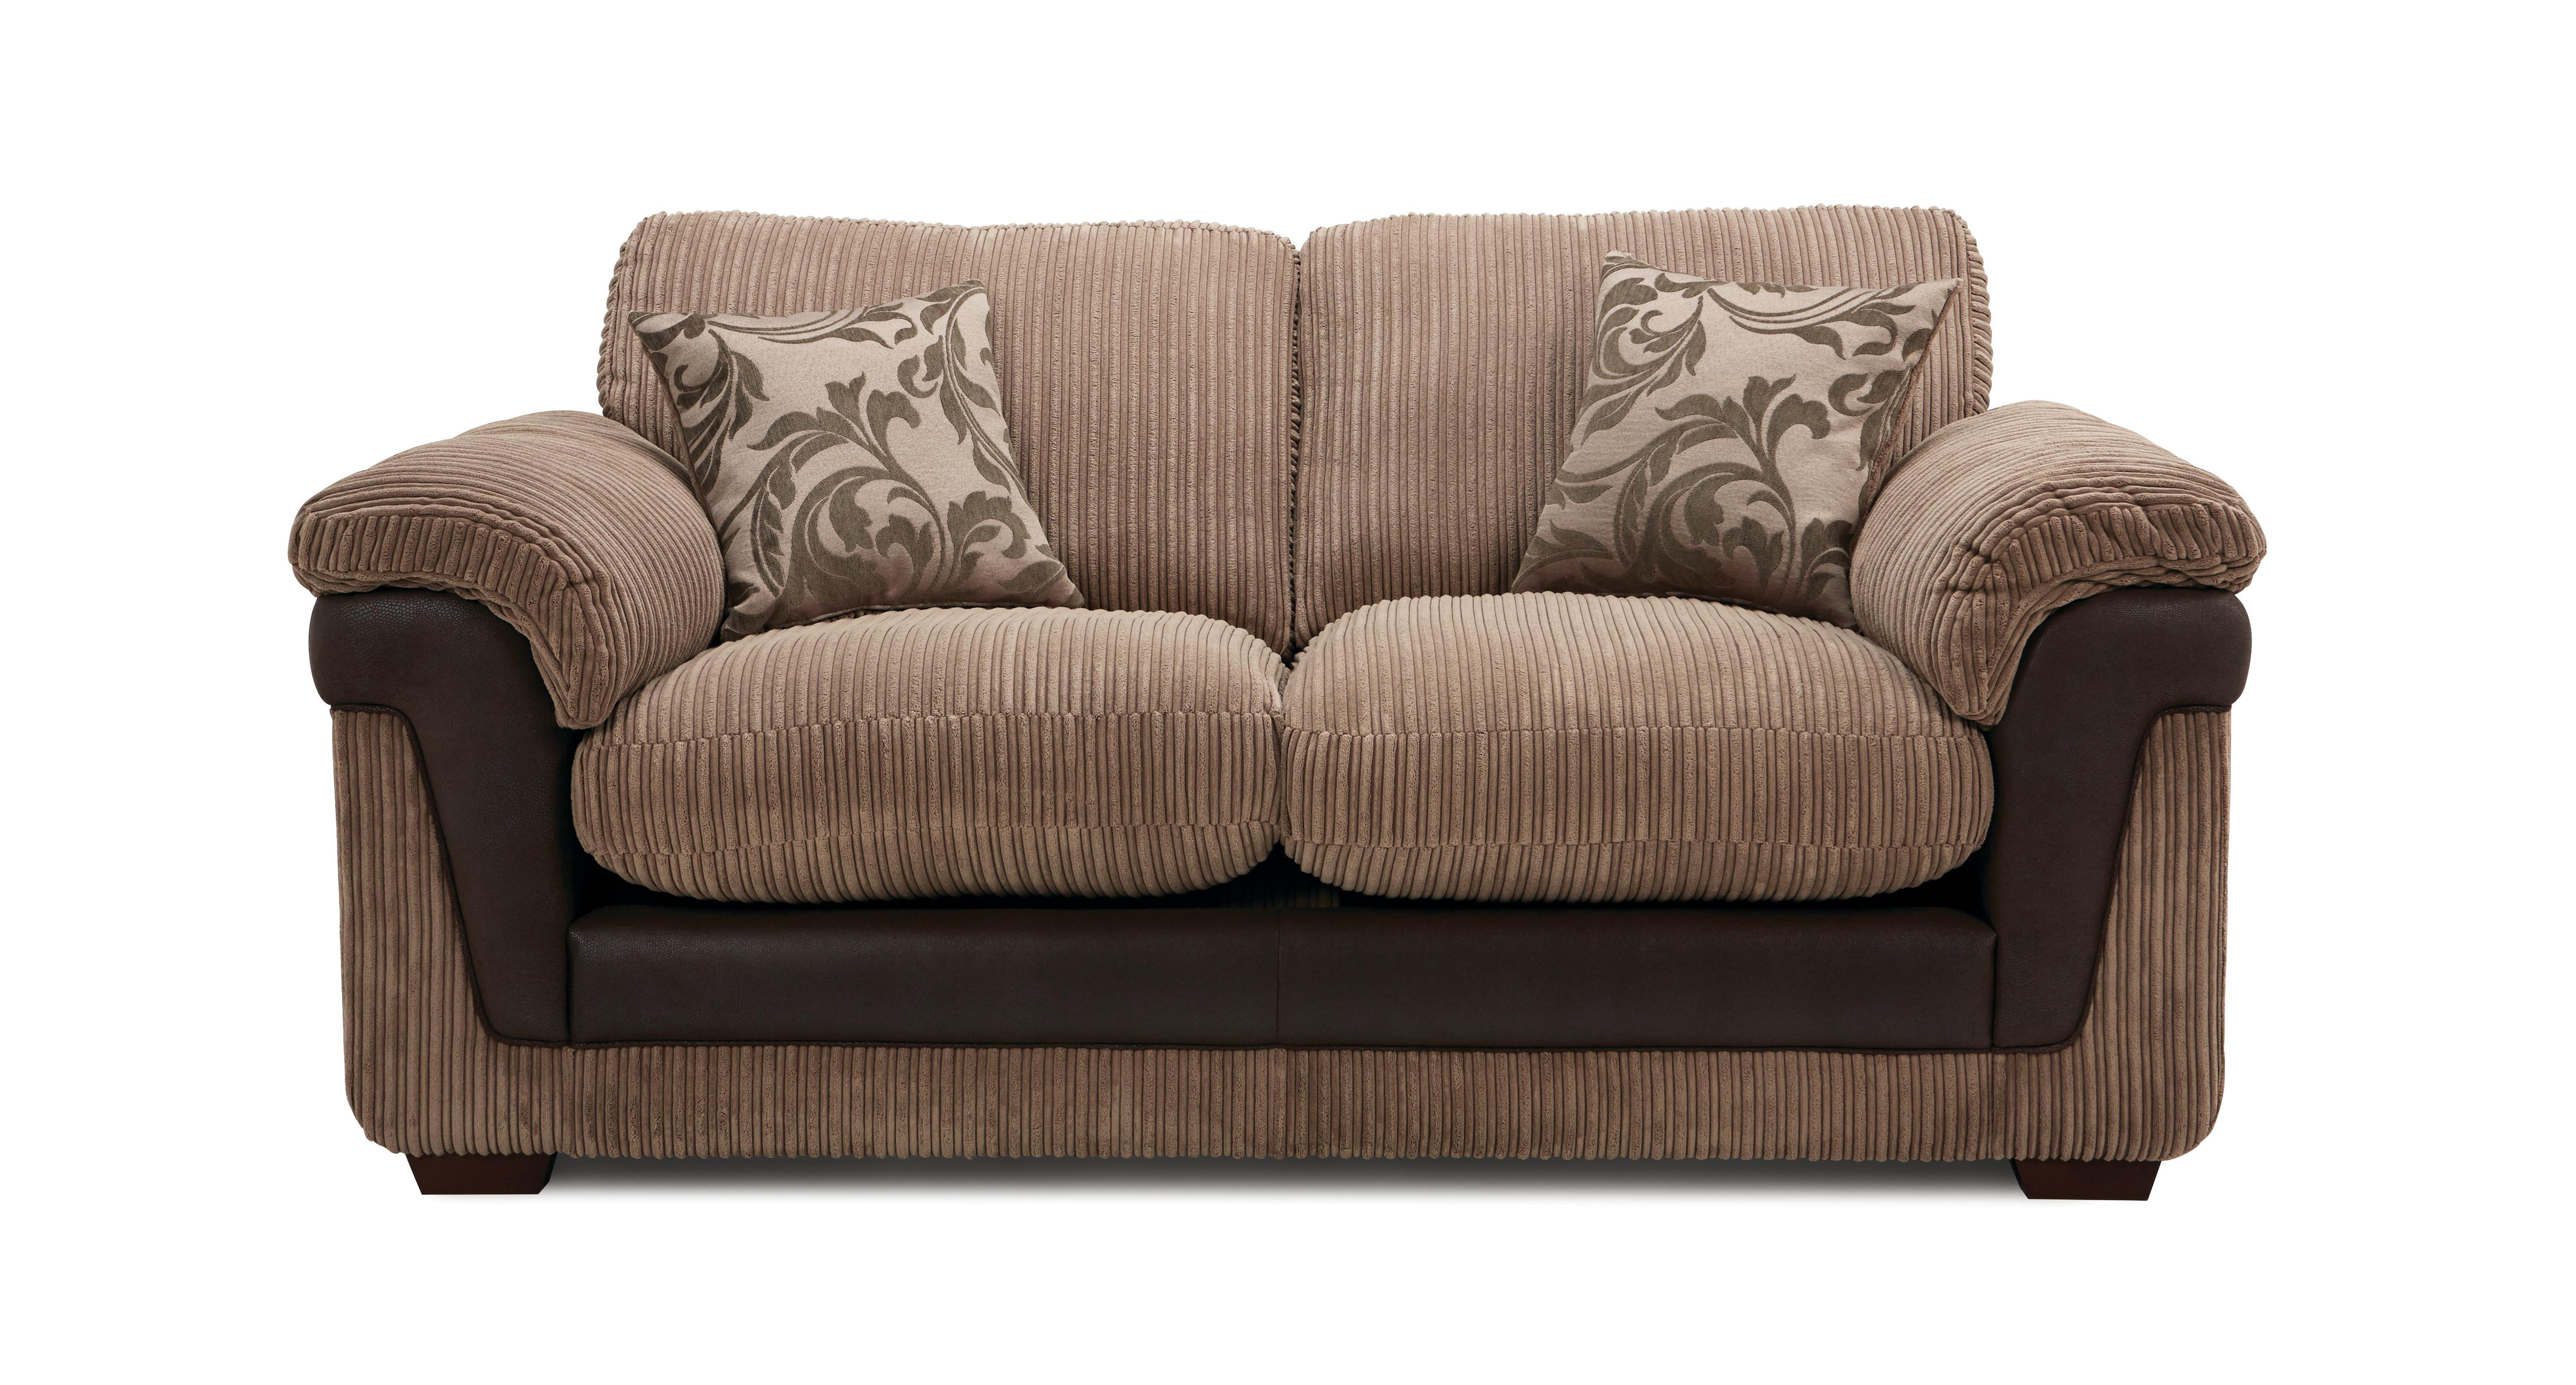 Coburn 2 Seater Formal Back Sofa Inception